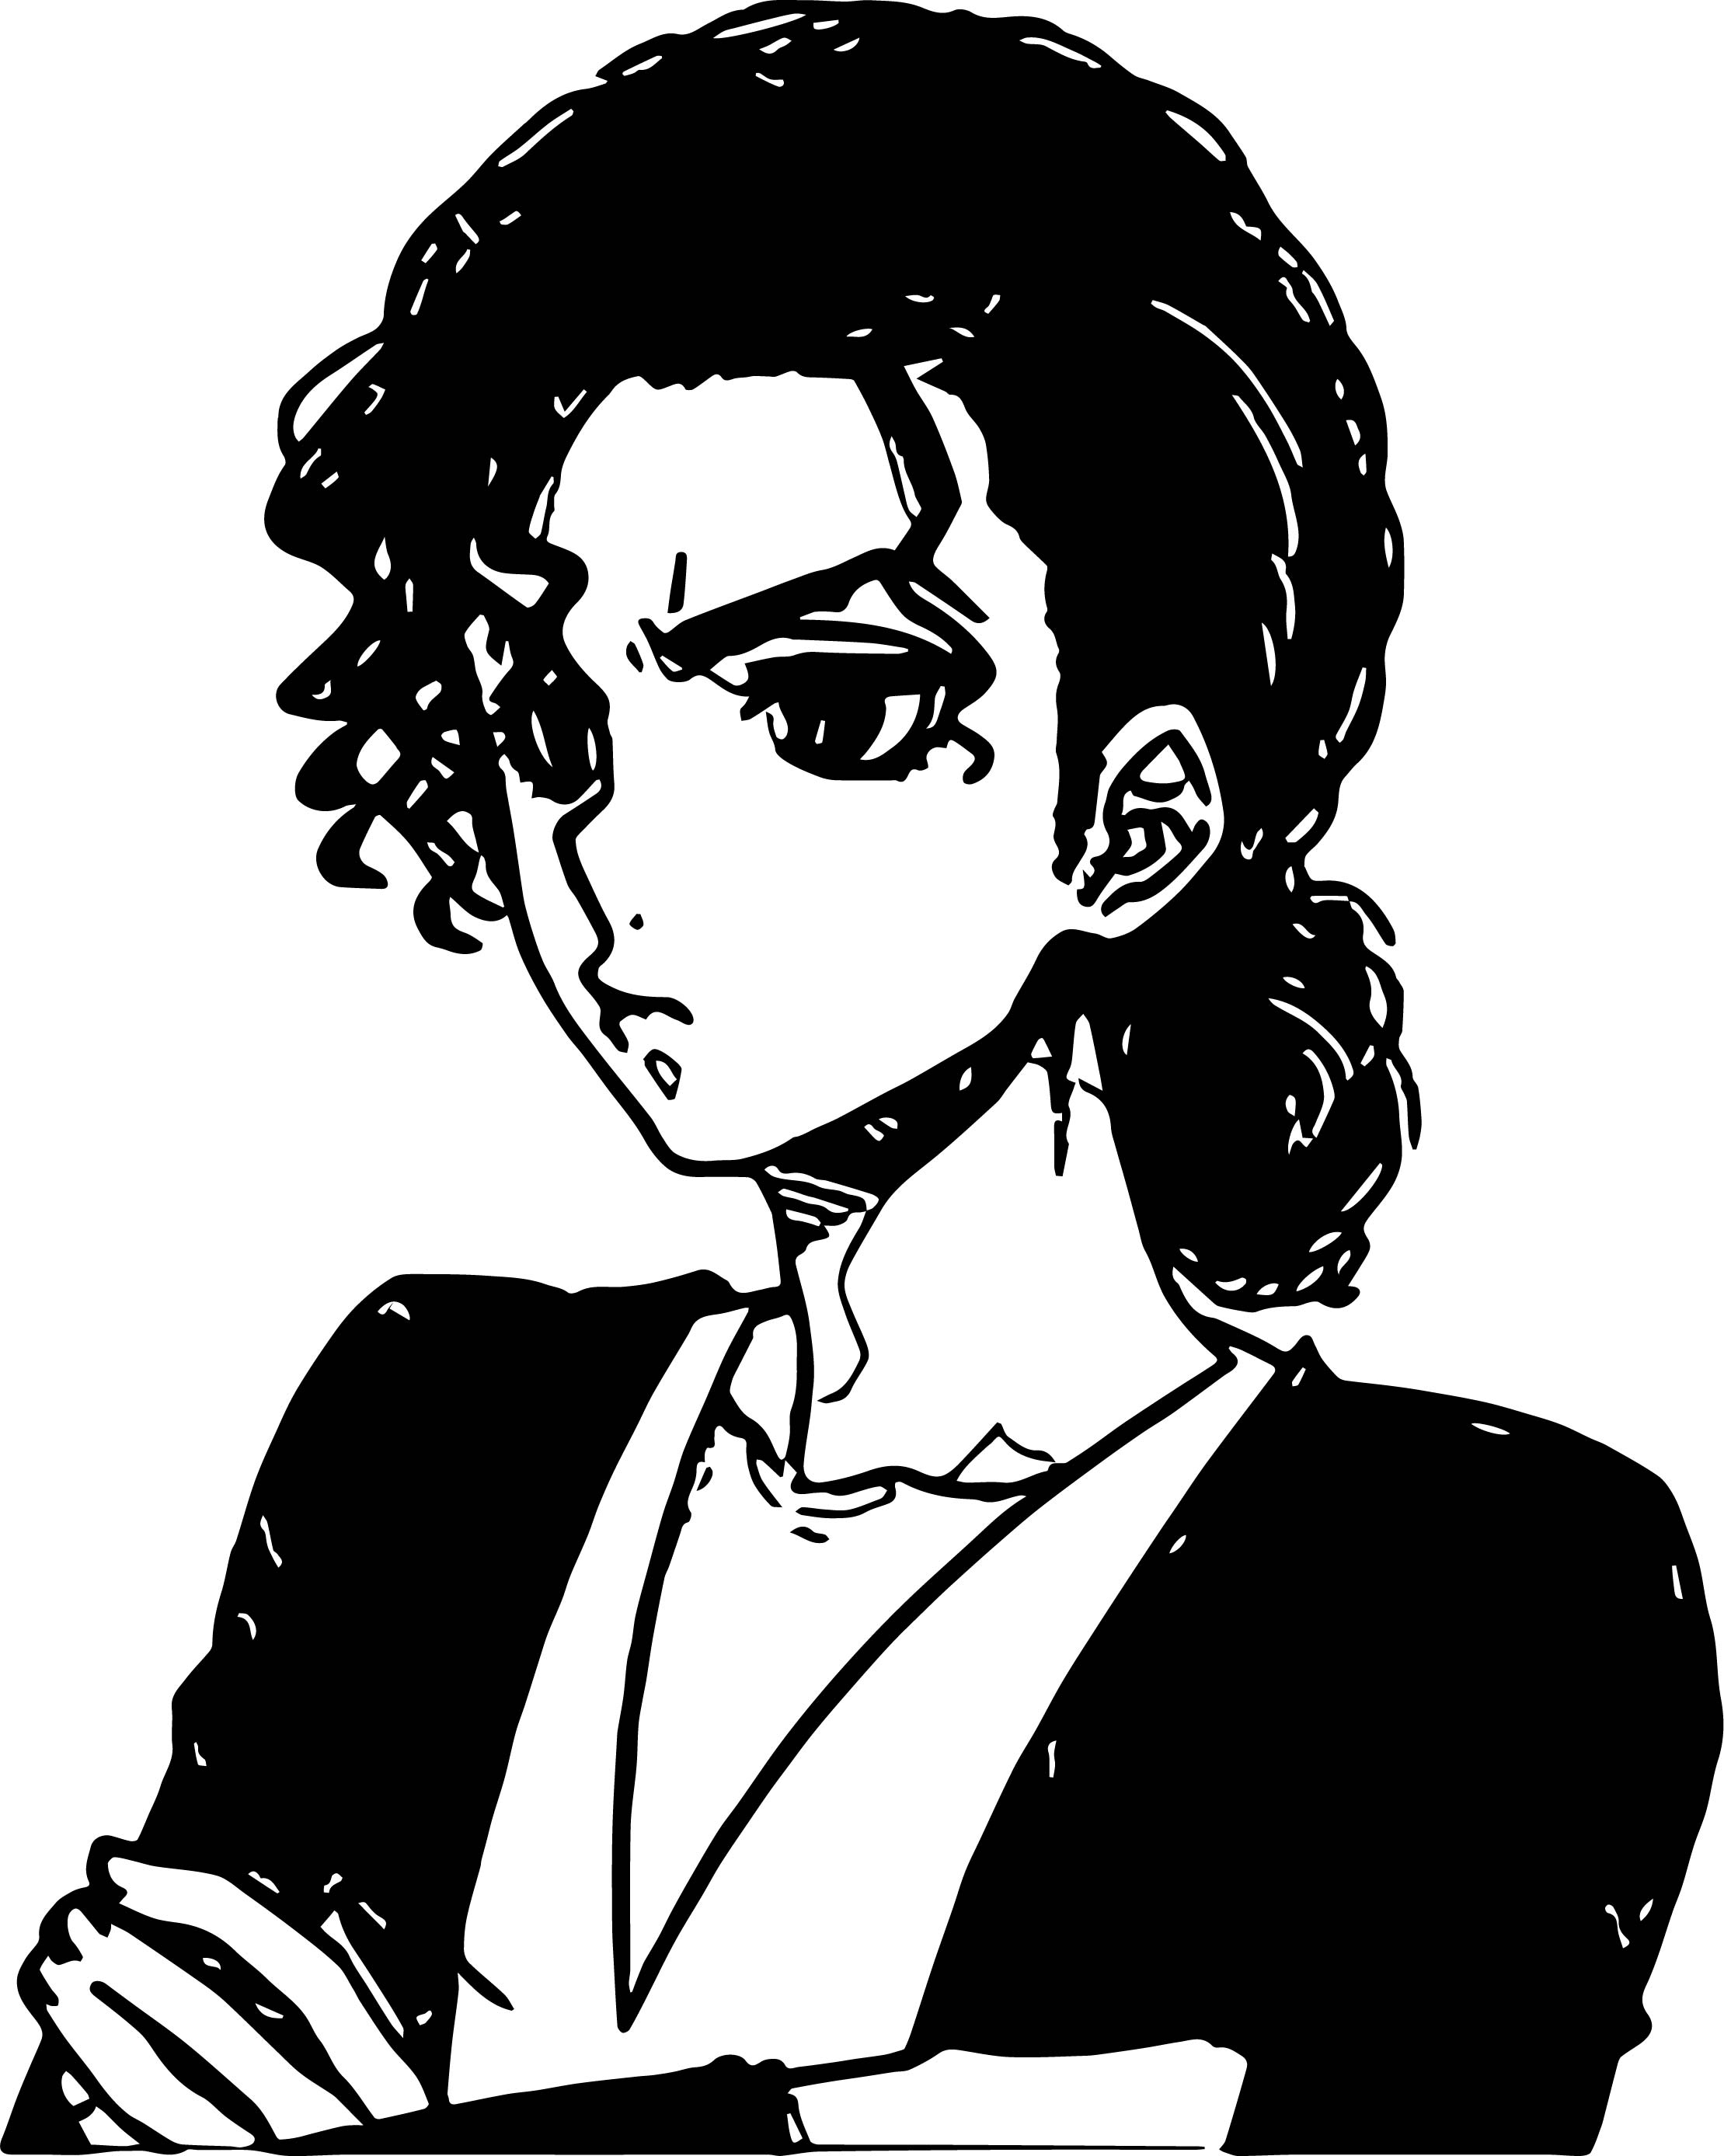 Michael Jackson Anime Think Coloring Page